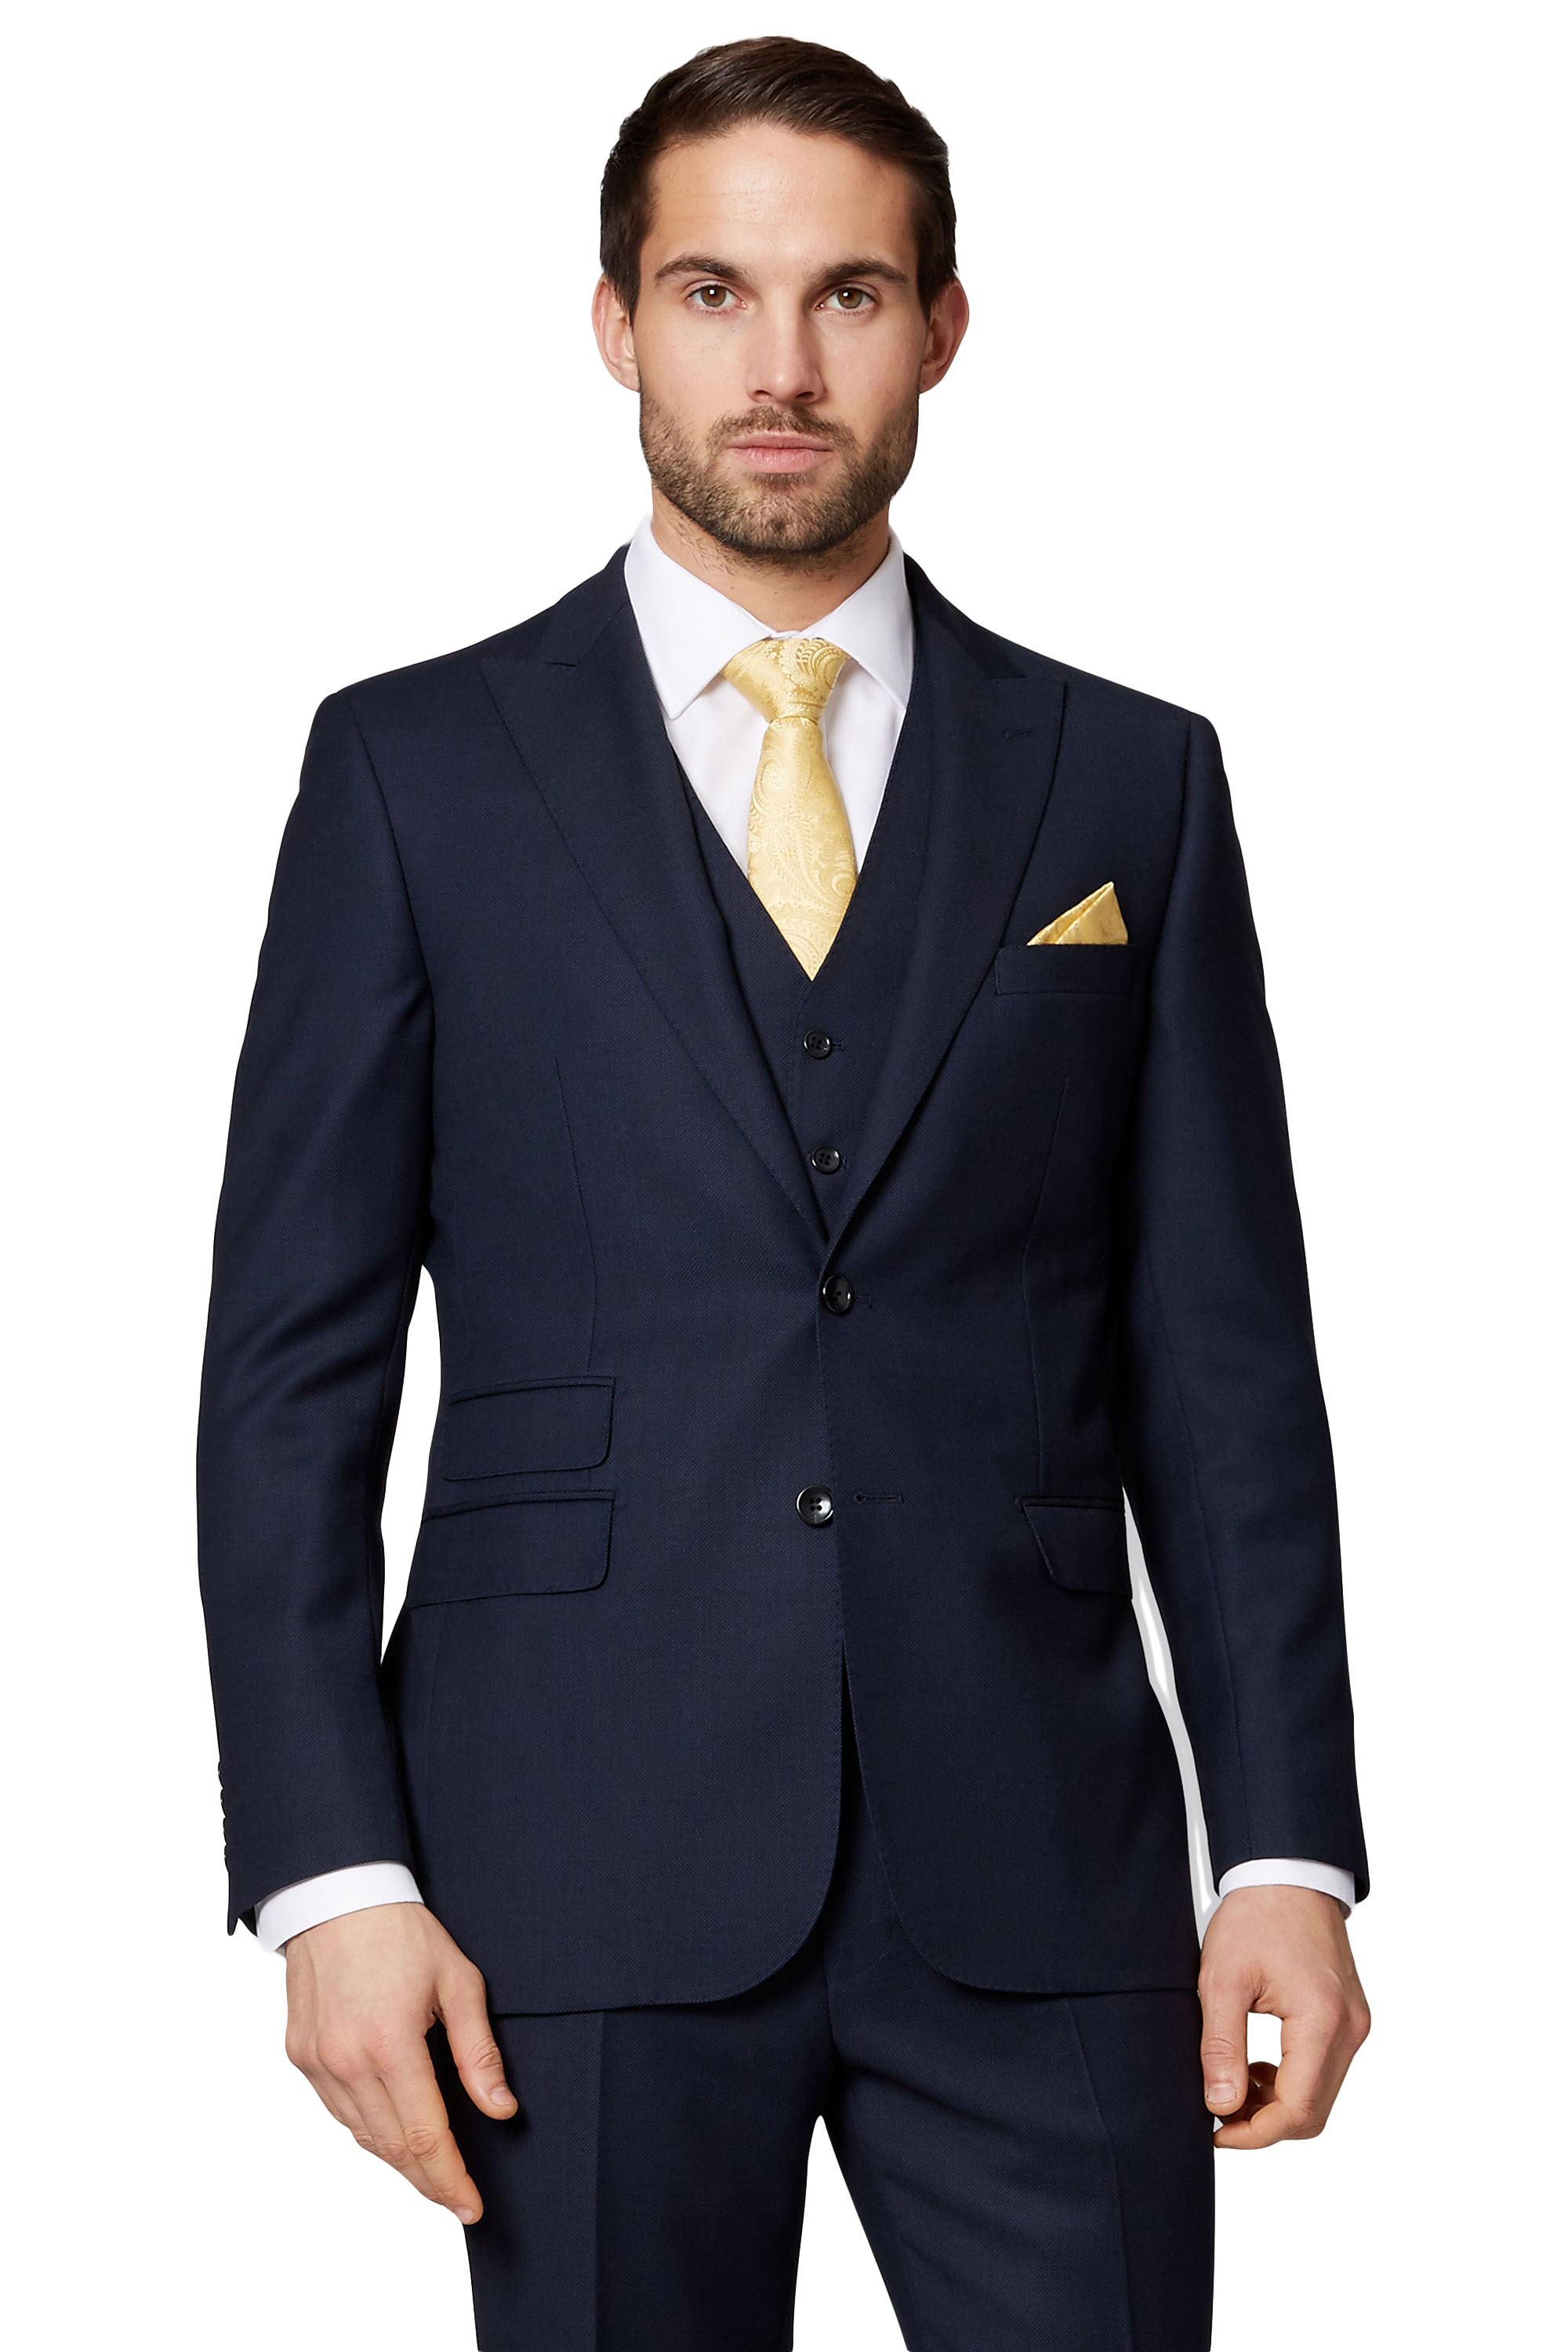 d4219094a7 Details about Savoy Taylors Guild Mens Navy Blue Birdseye Suit Jacket  Single Breasted Wool